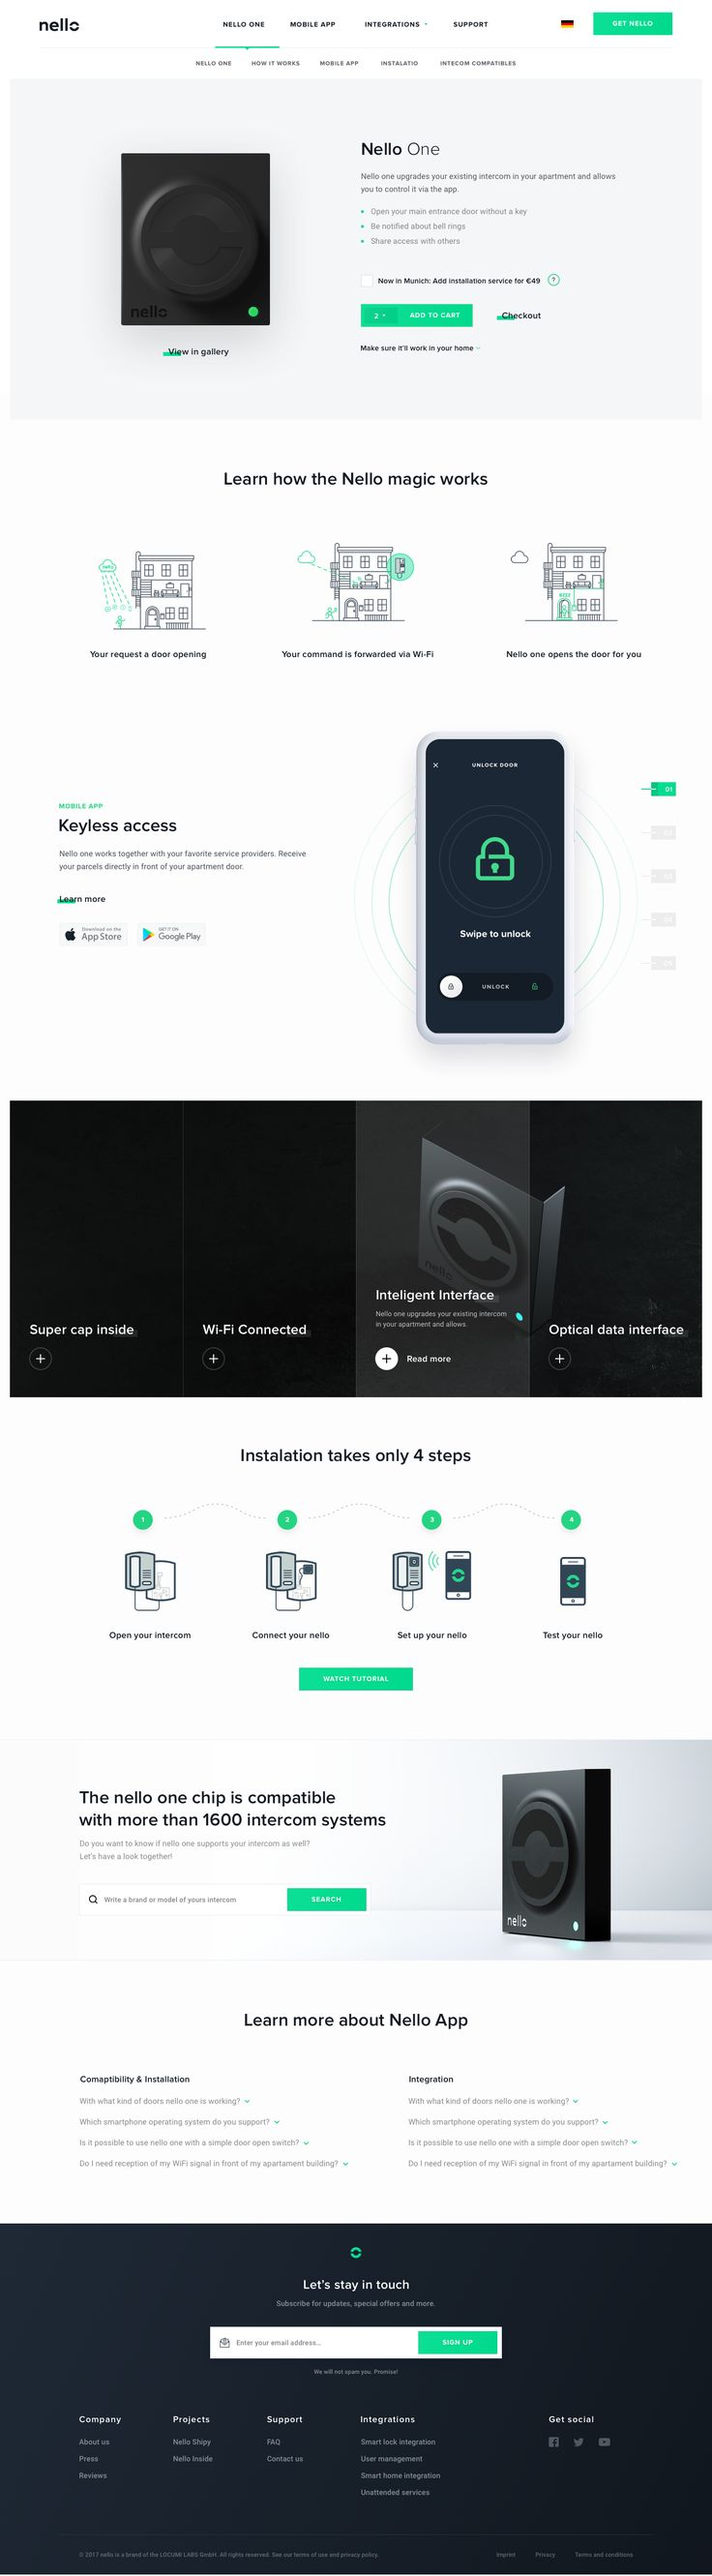 Nello one product page